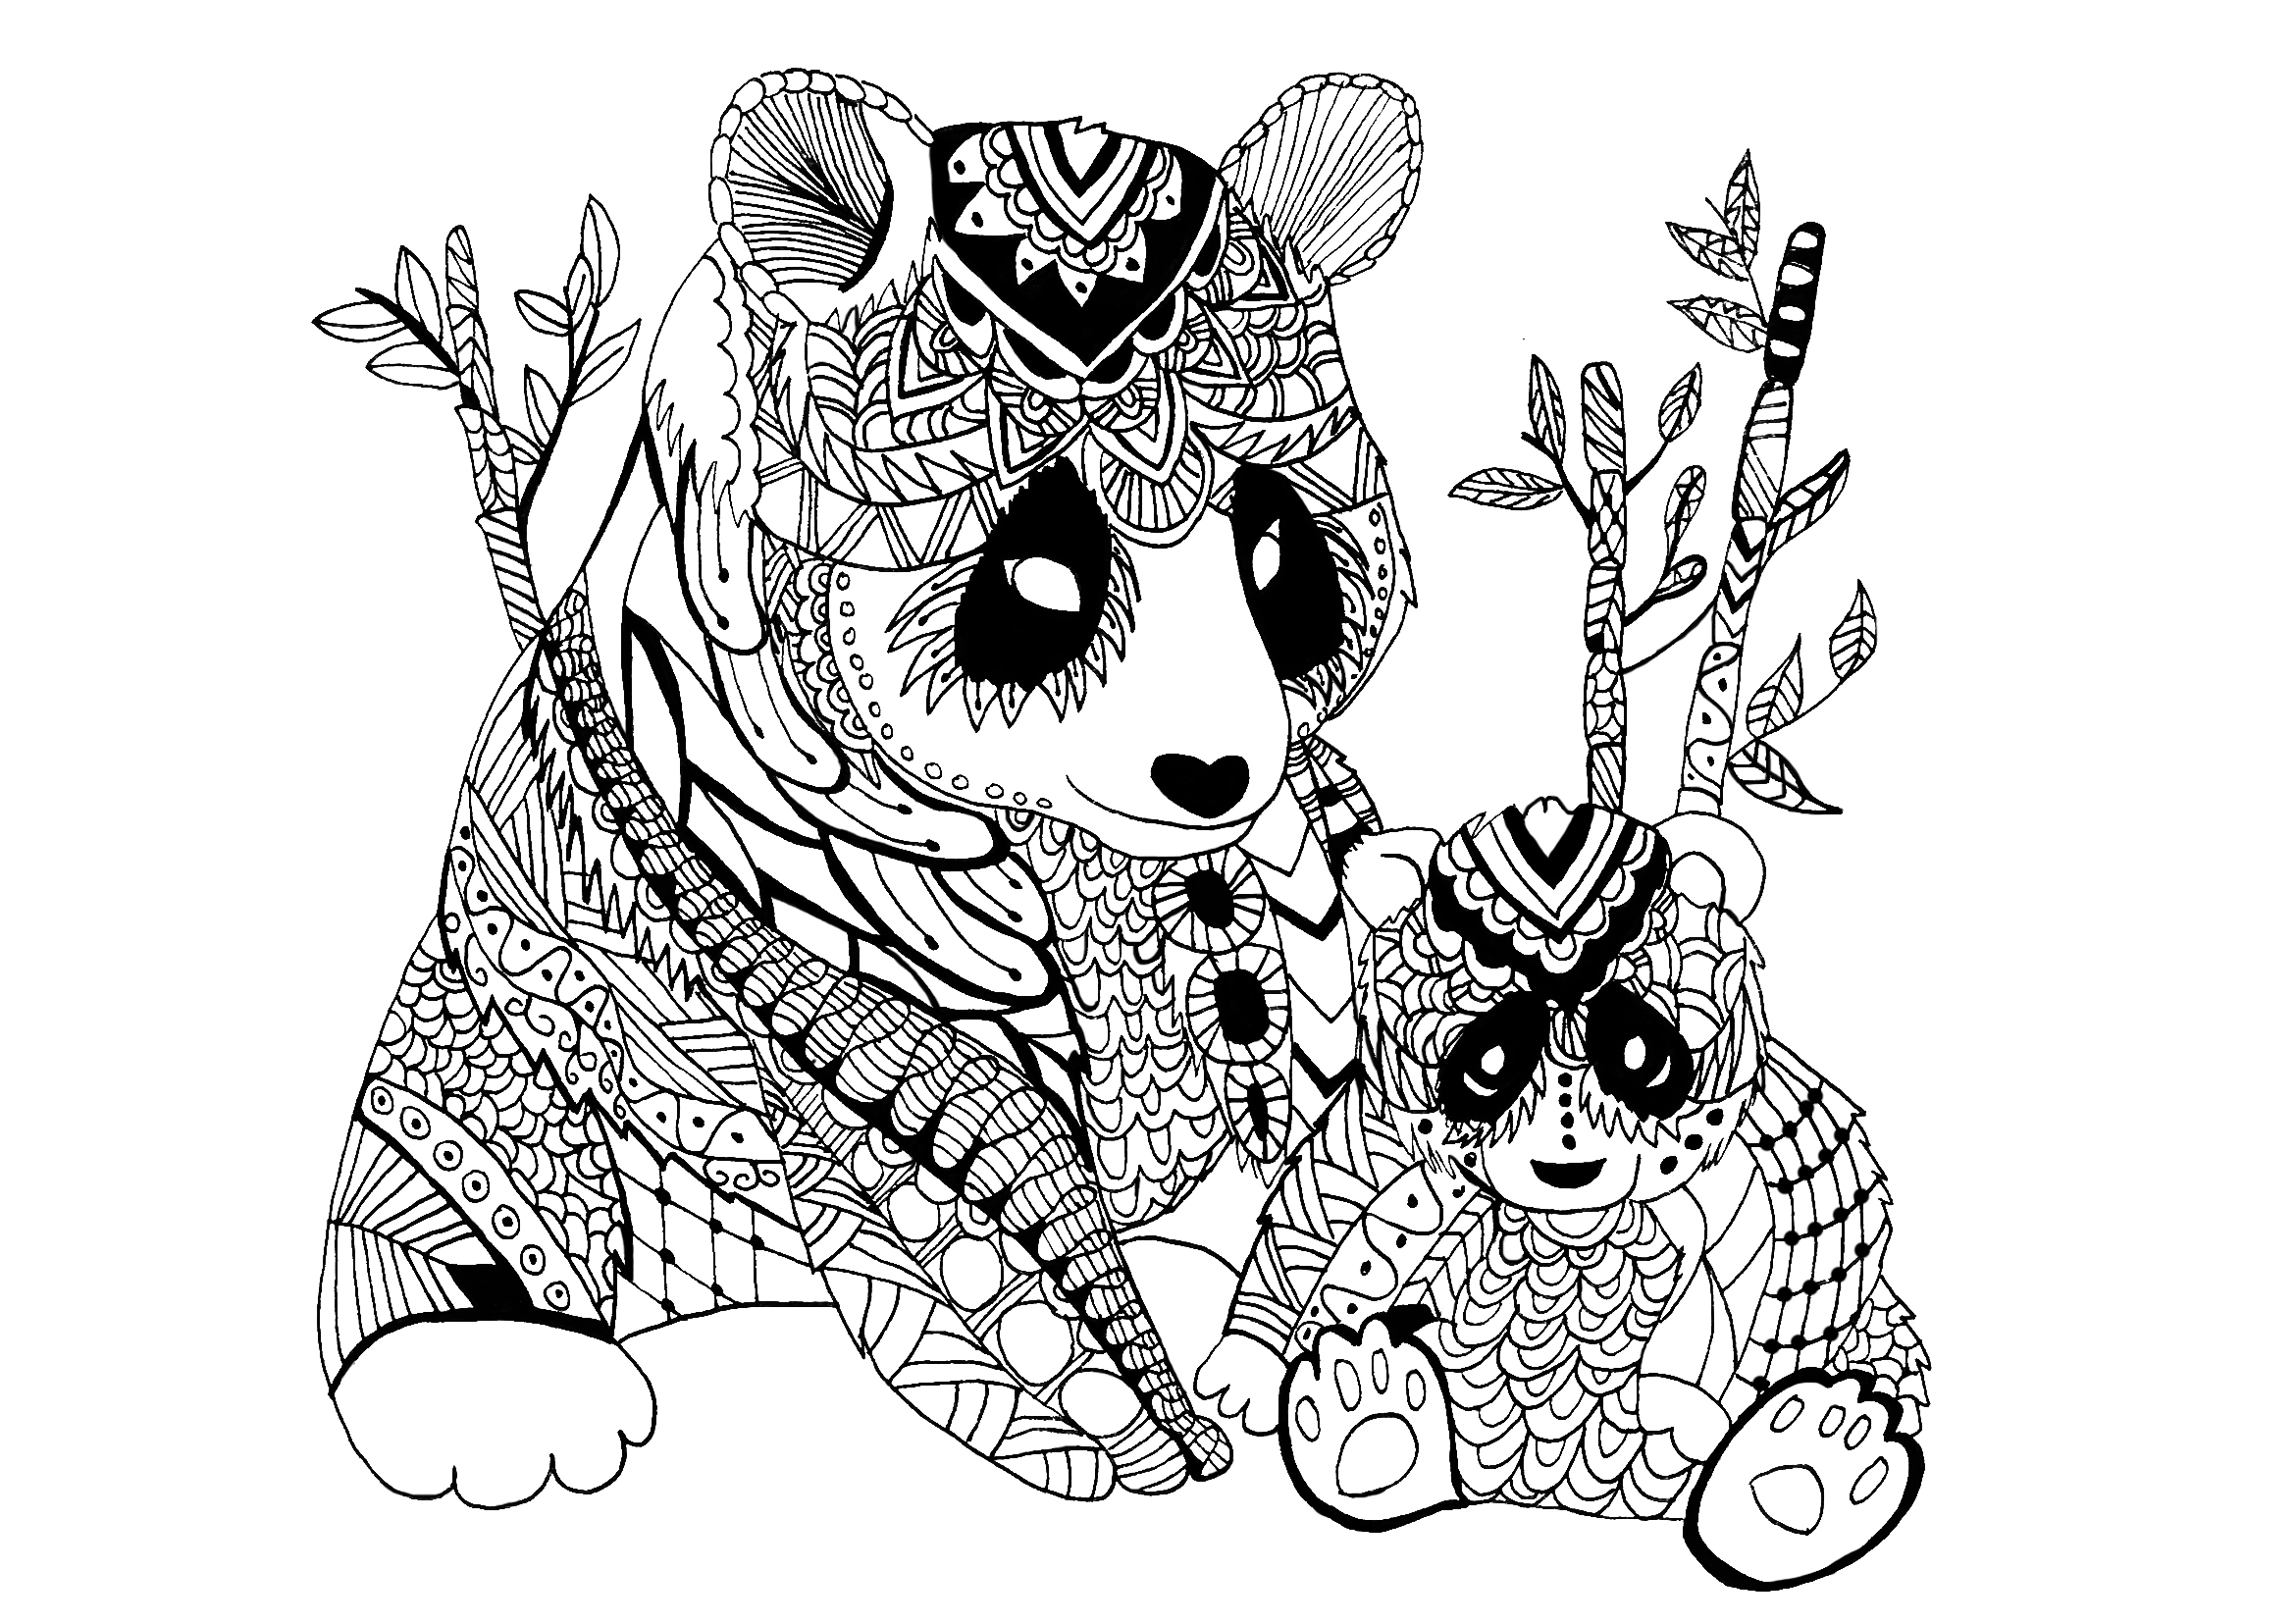 Coloring Page Butterfly Zentangle Rachel Panda Mother With Baby Drawn In Style